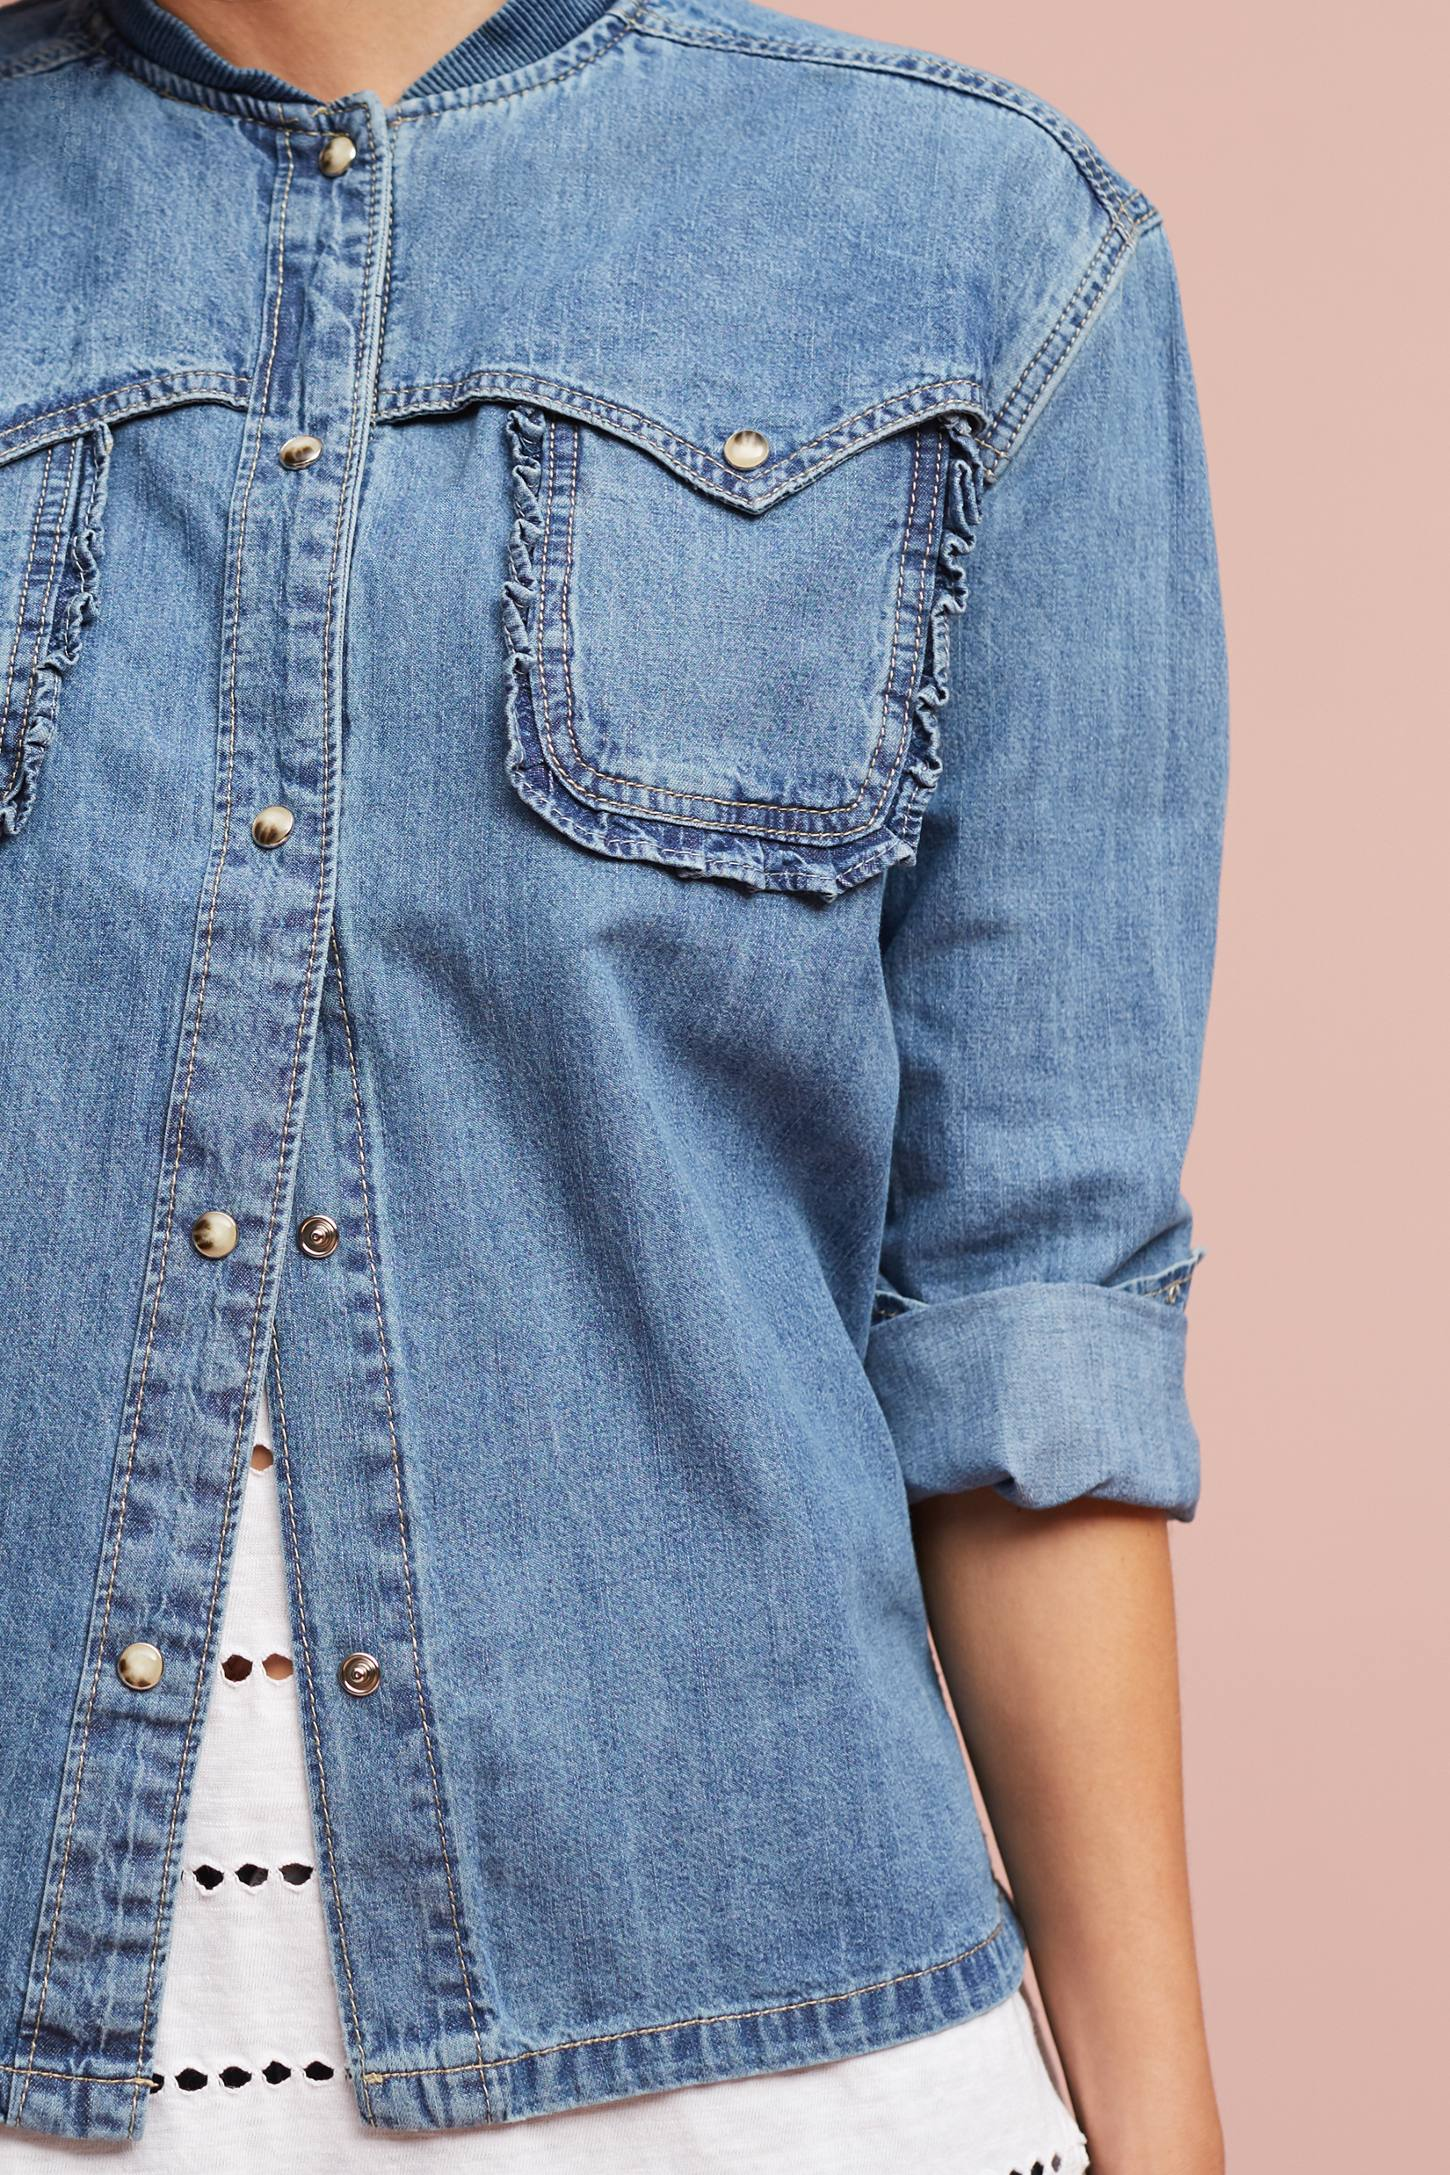 Slide View: 3: Wilma Denim Bomber Shirt Jacket